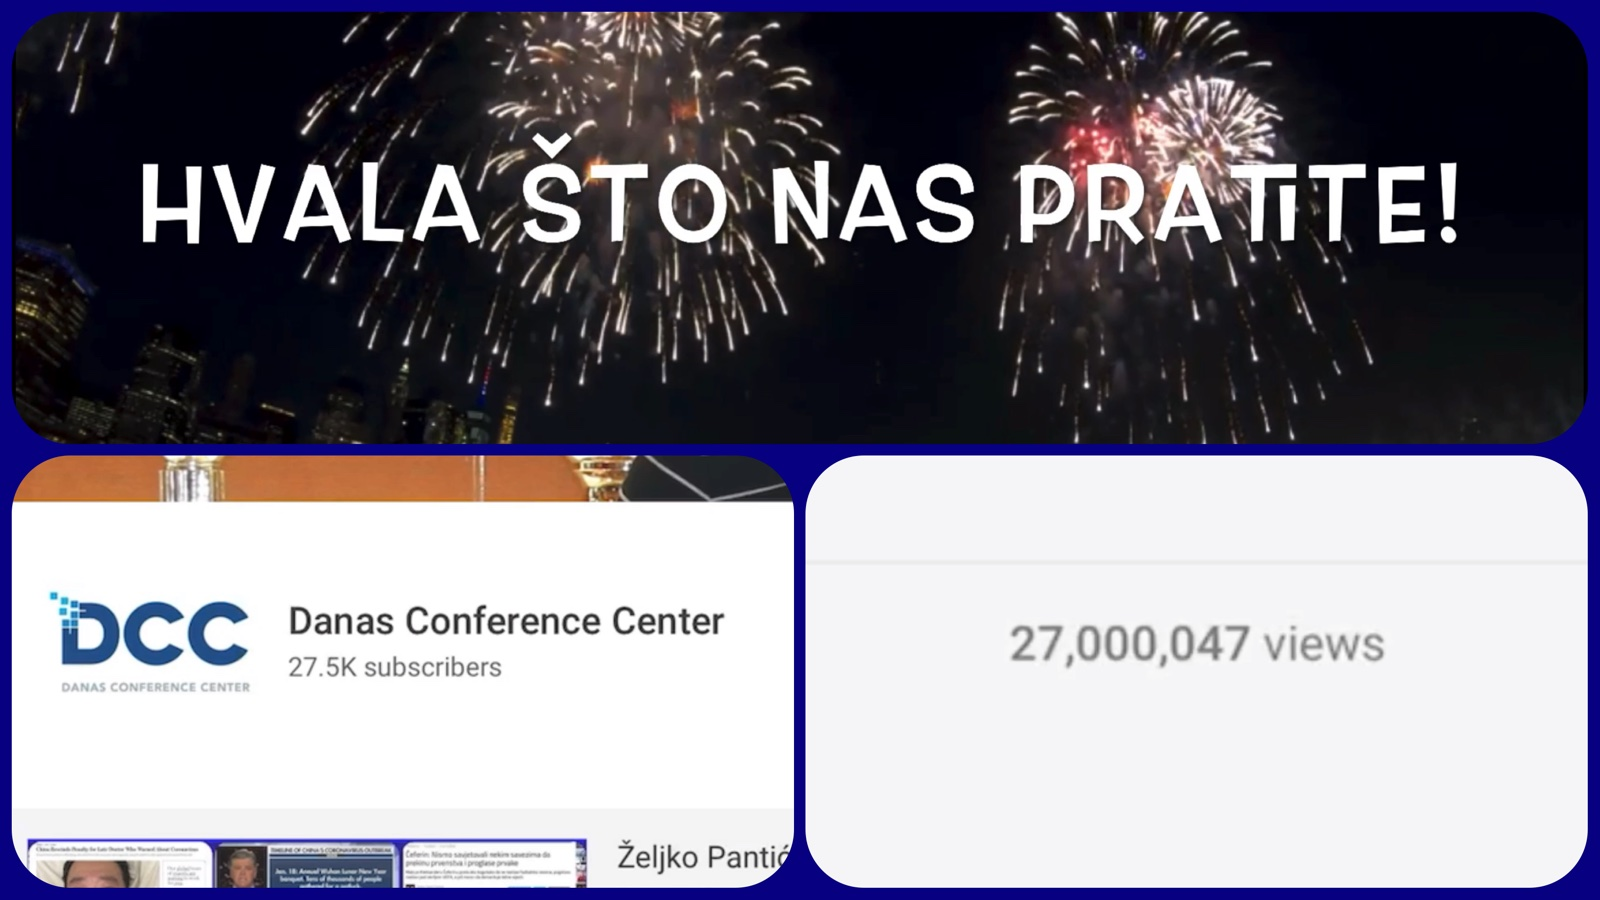 27 miliona pregleda na YouTube kanalu Danas Conference Center! (VIDEO)